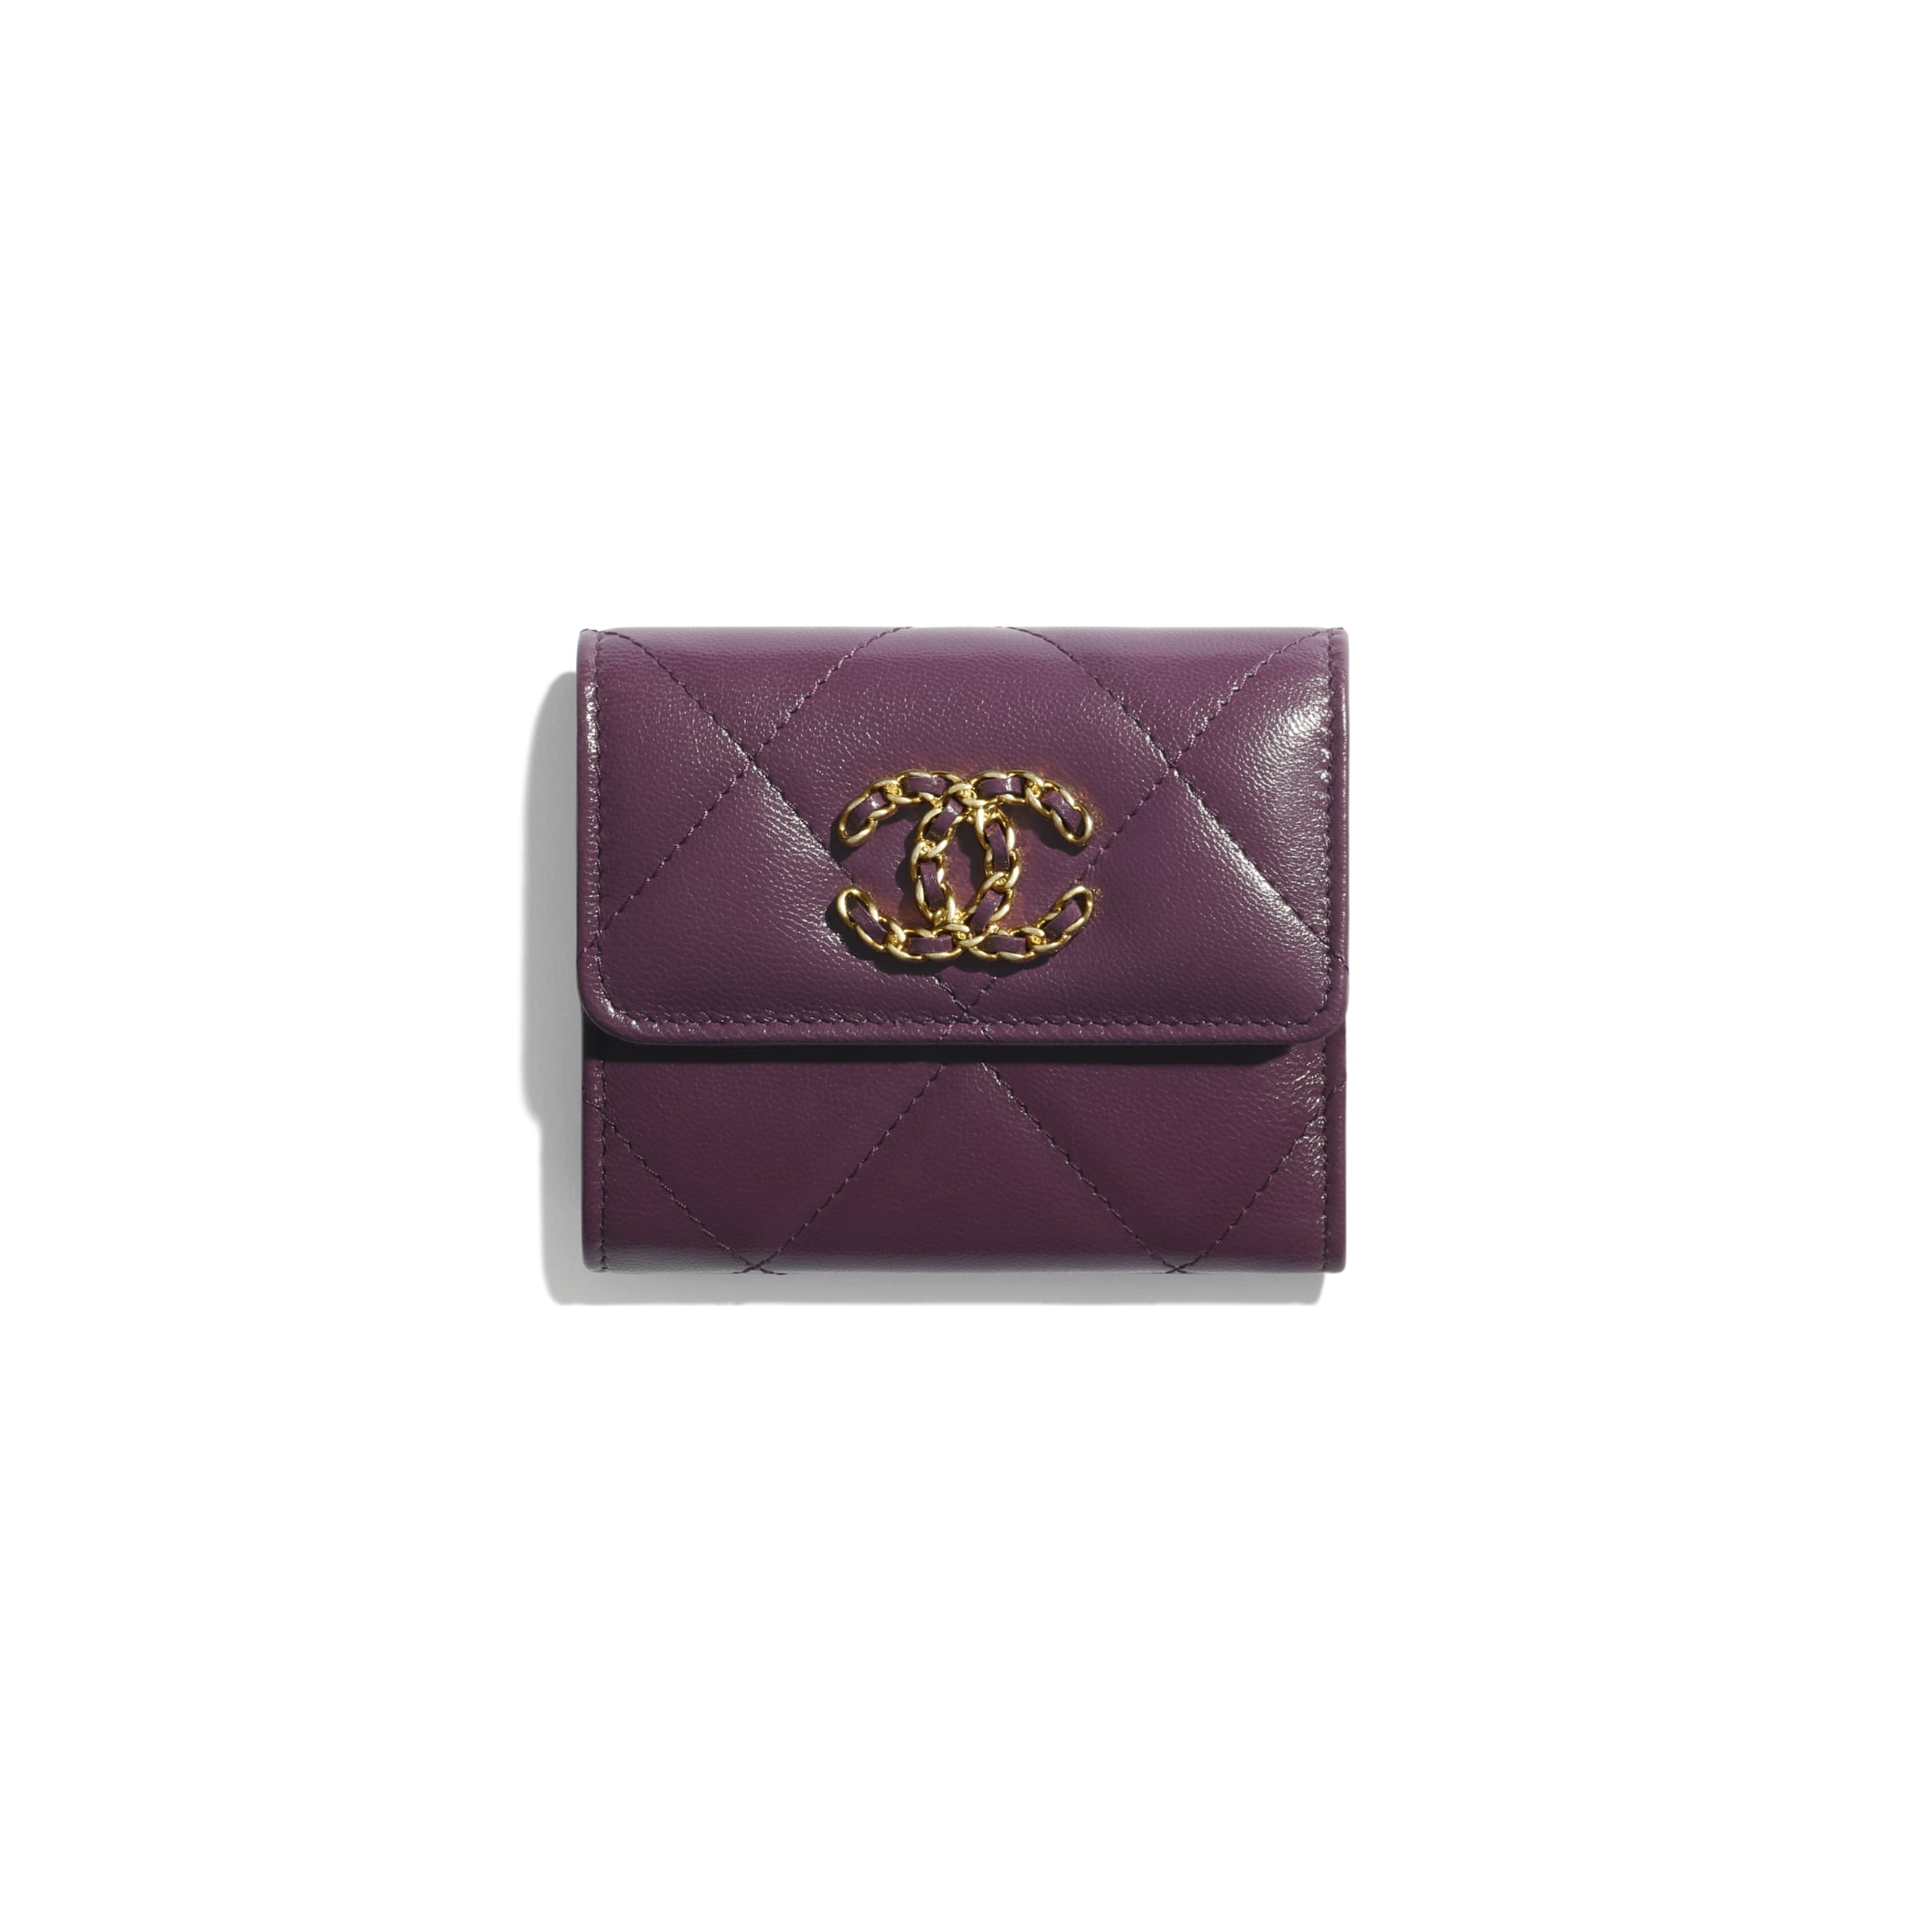 Small Flap Wallet - Purple - Shiny Goatskin & Gold-Tone Metal - CHANEL - Default view - see standard sized version